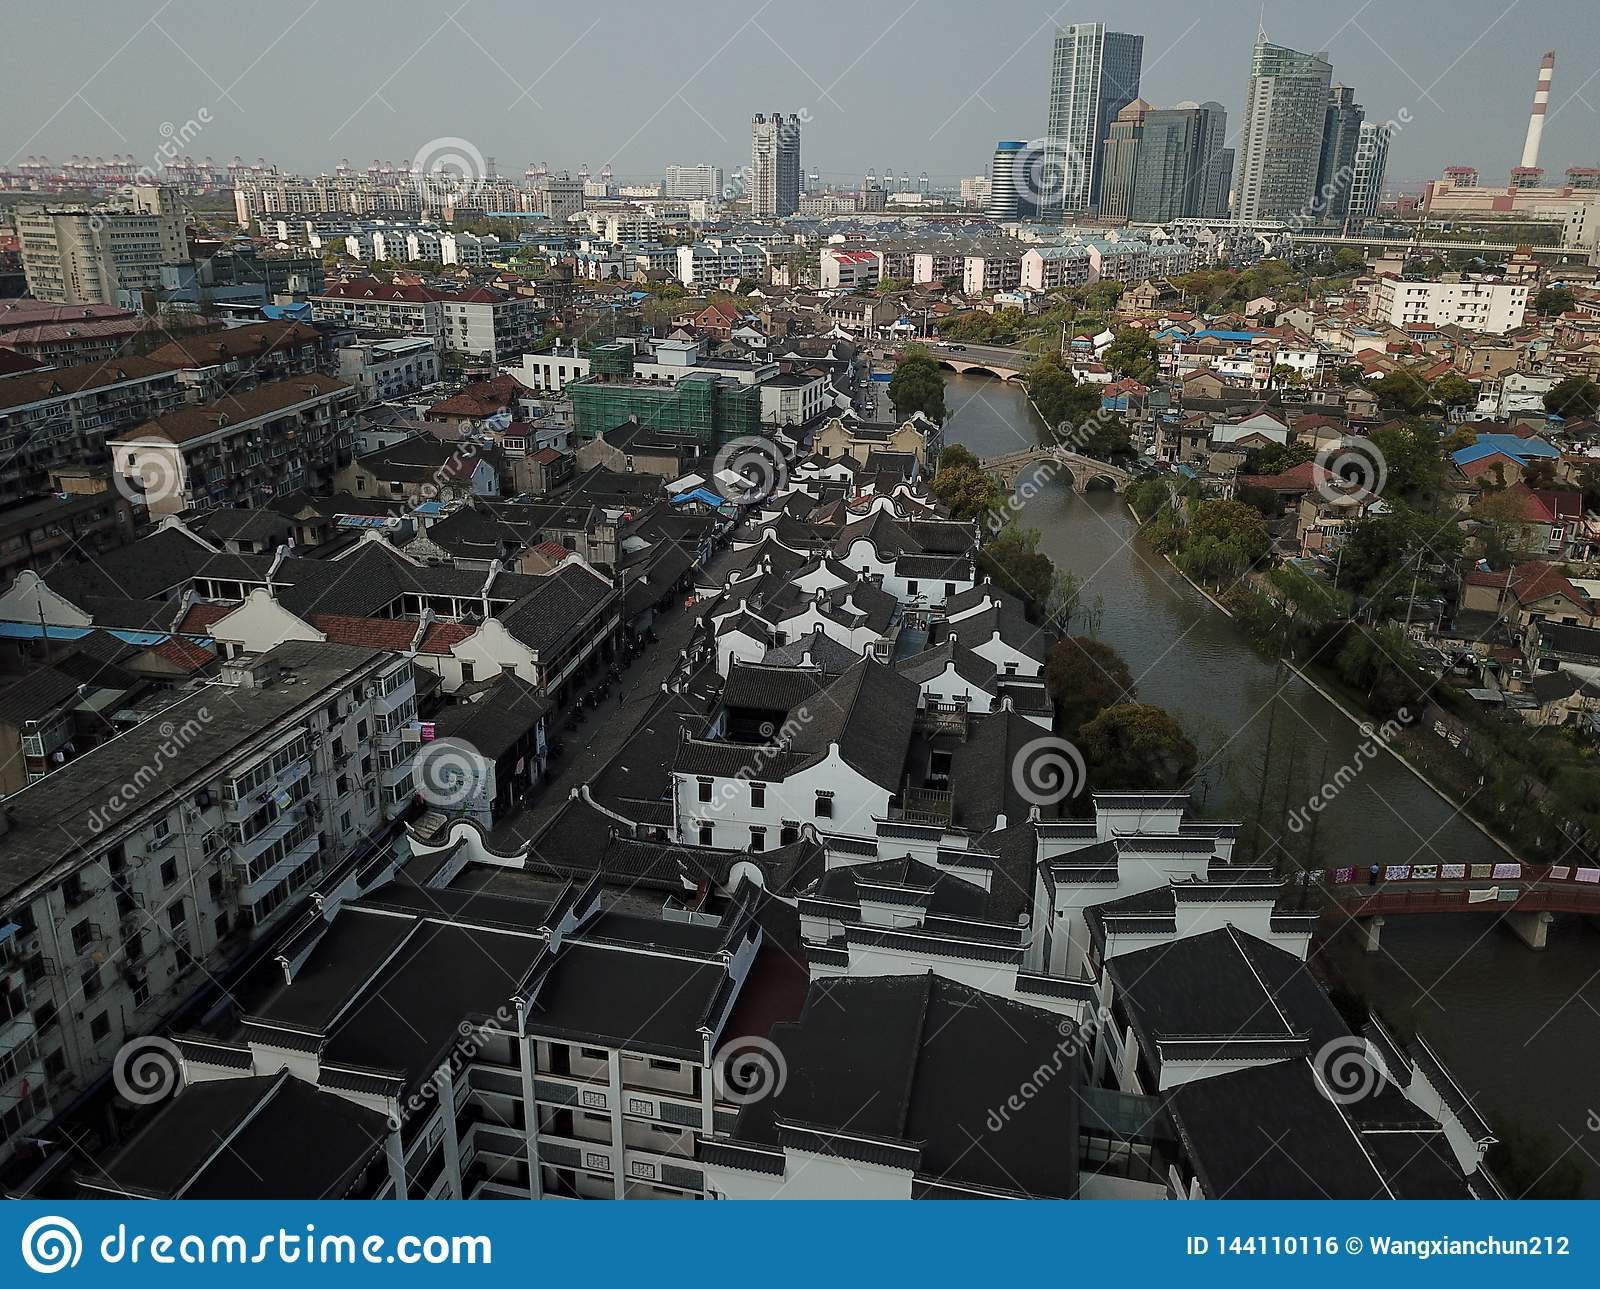 Black tile roof in Gaoqiao Ancient Town, Shanghai